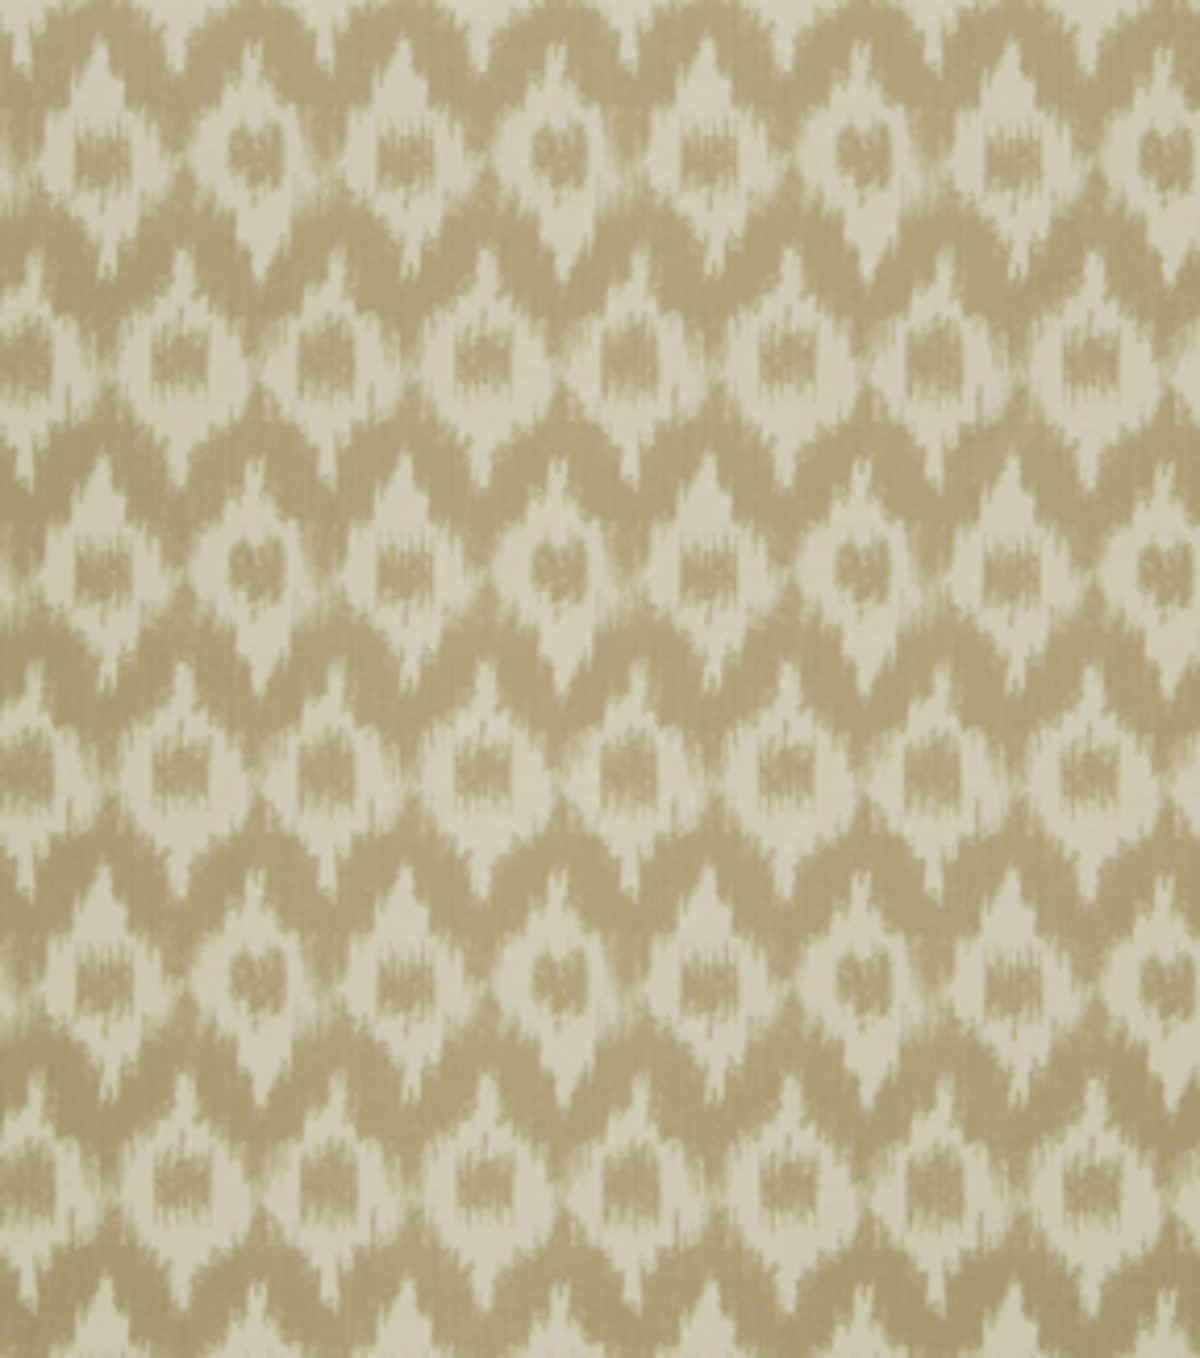 Home Decor 8\u0022x8\u0022 Fabric Swatch-French General Cecilia Hemp